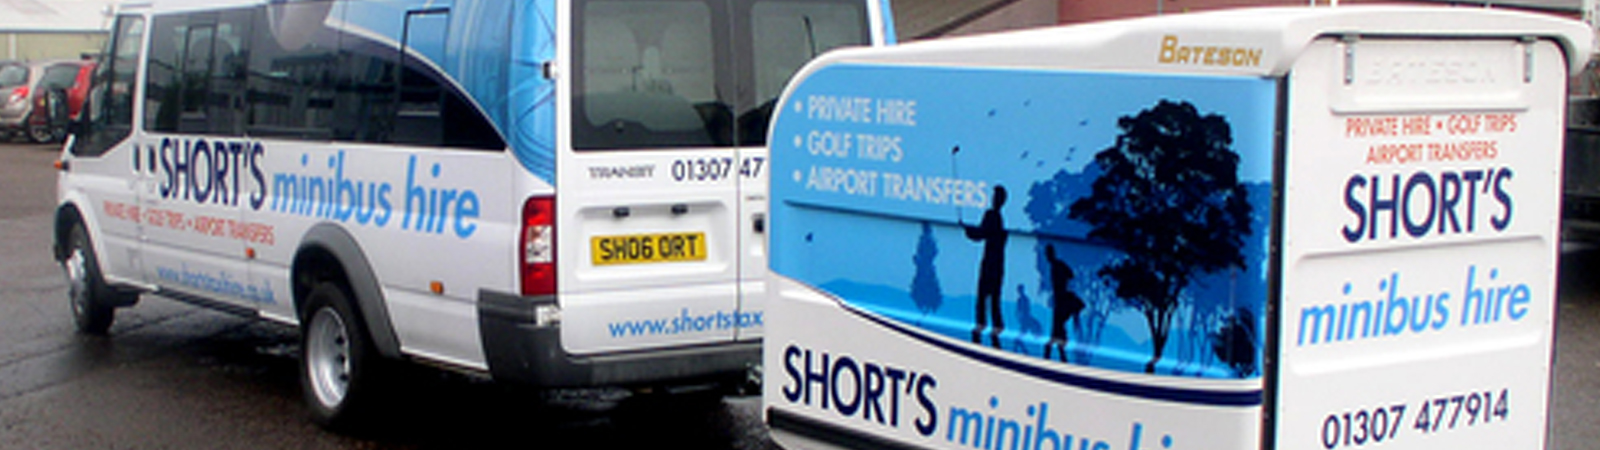 Shorts Travel and Garage Services